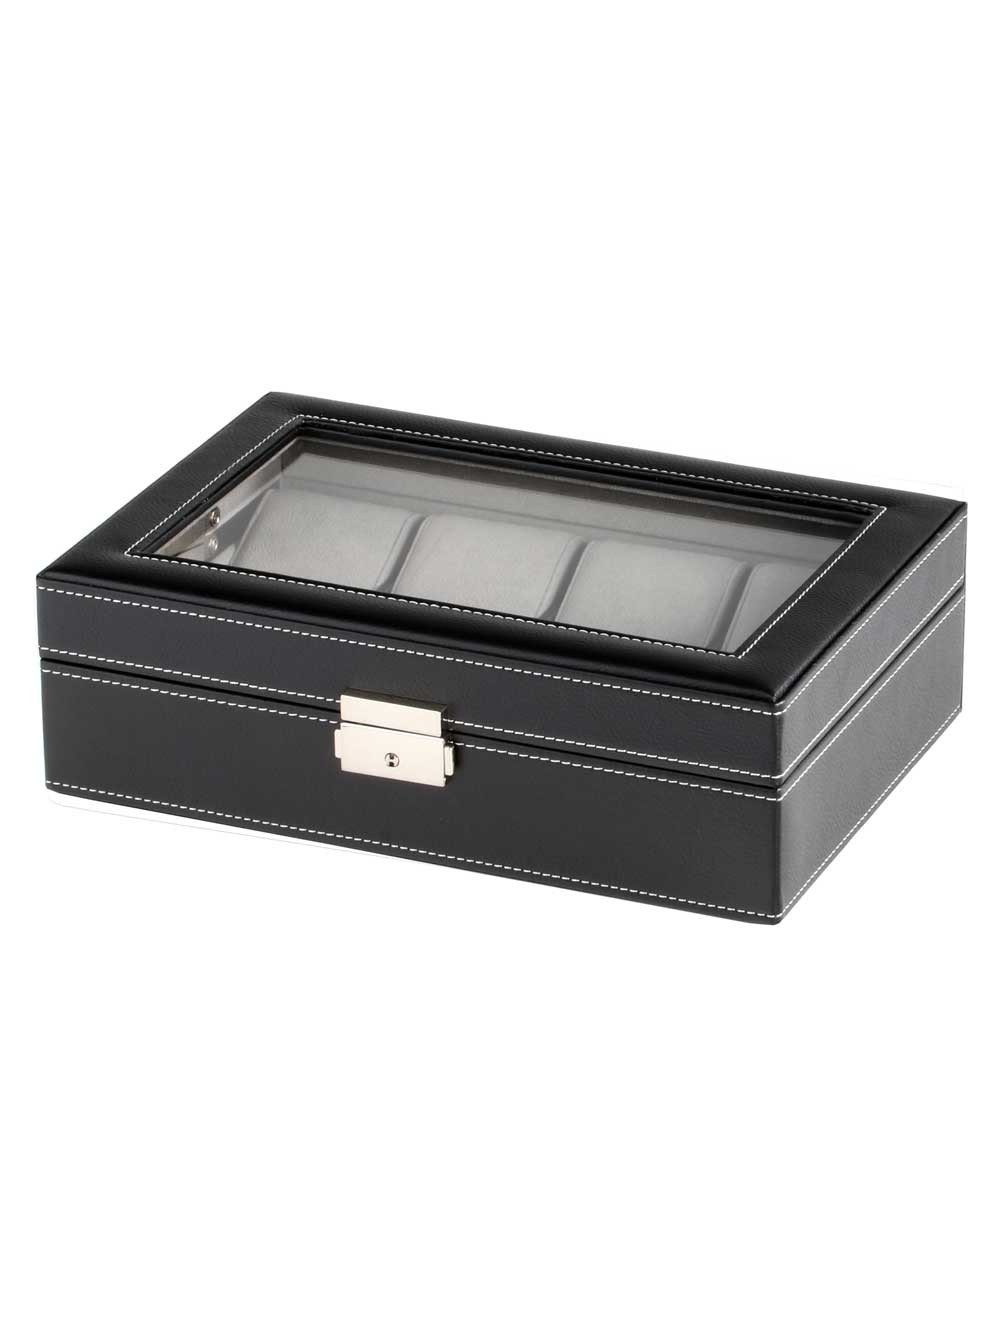 Rothenschild Watch Box RS-3361-8BL for 8 Watches Black